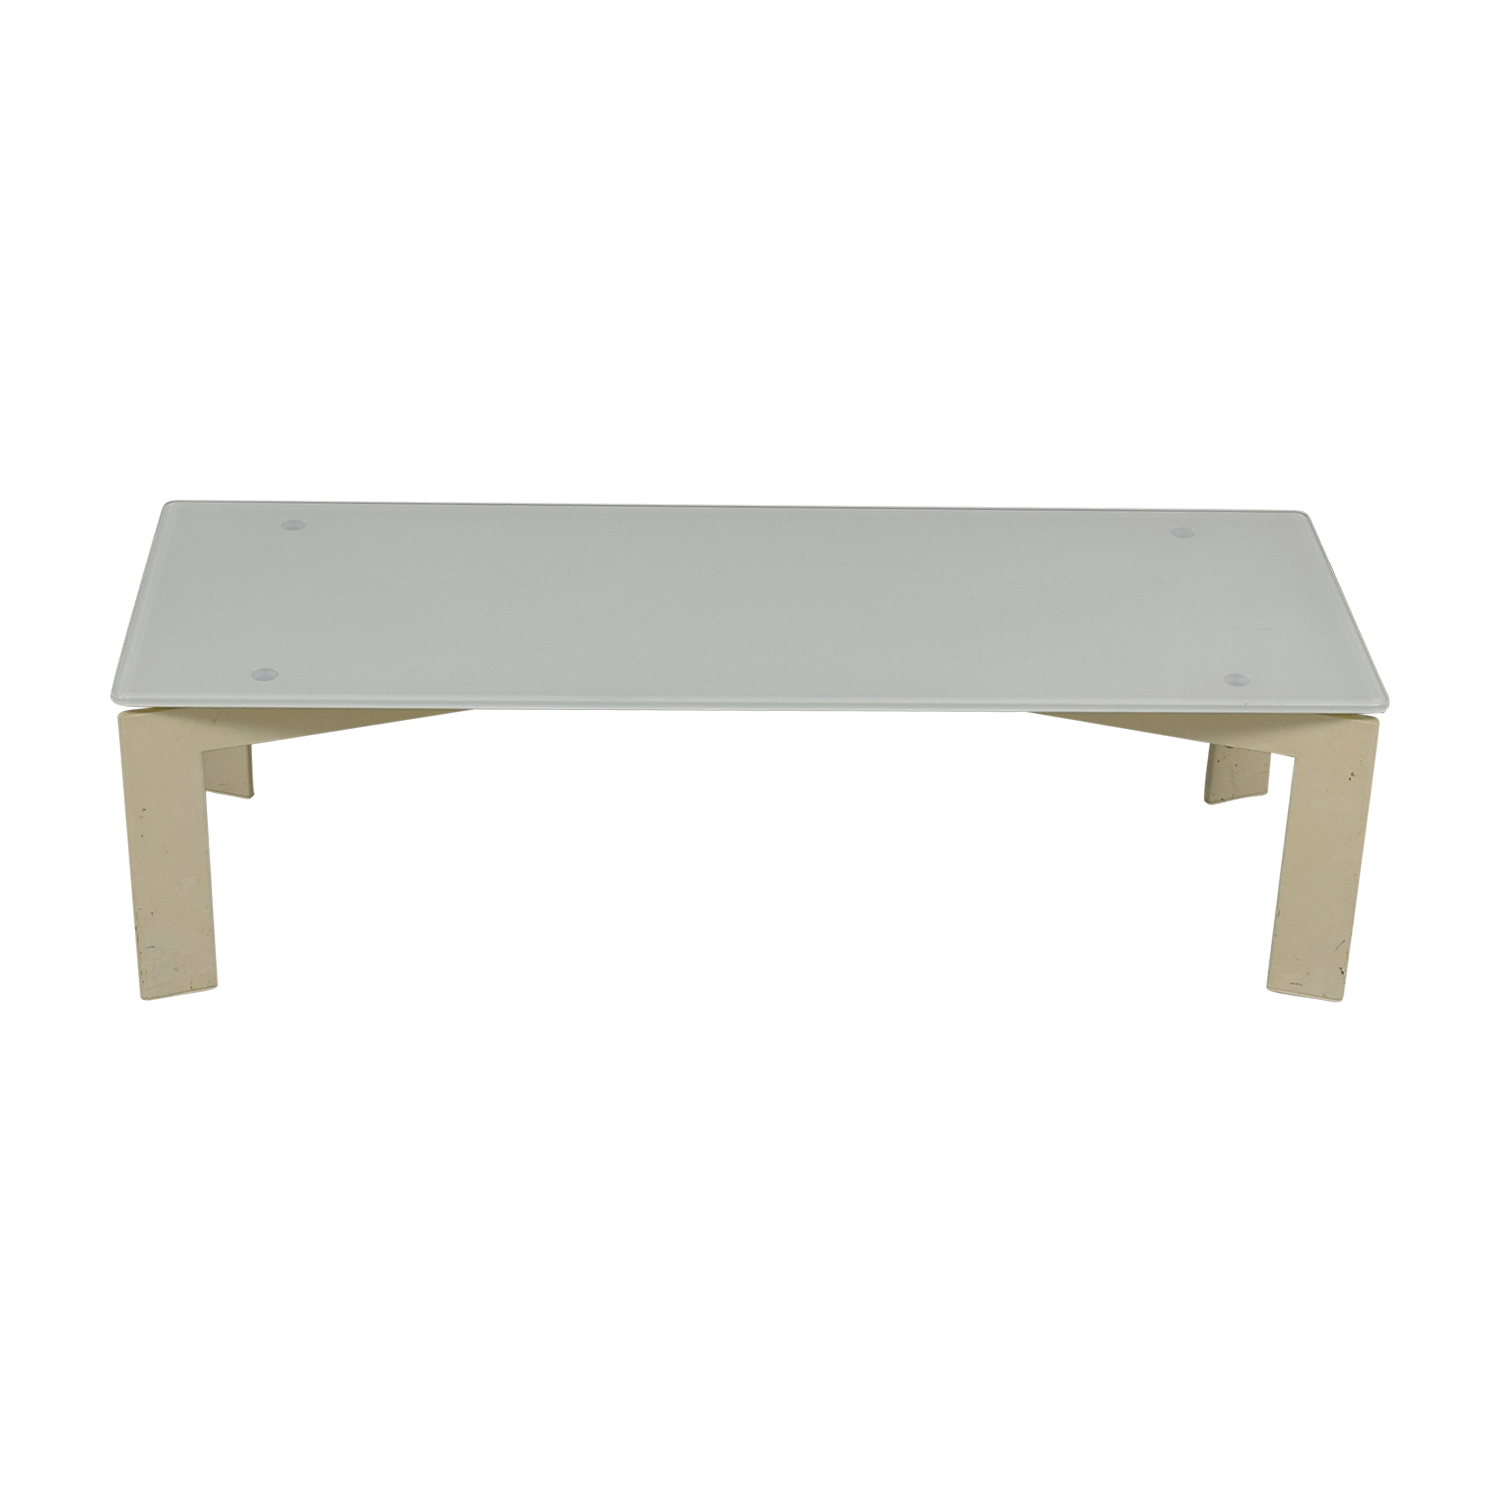 IKEA IKEA White Glass Coffee Table for sale